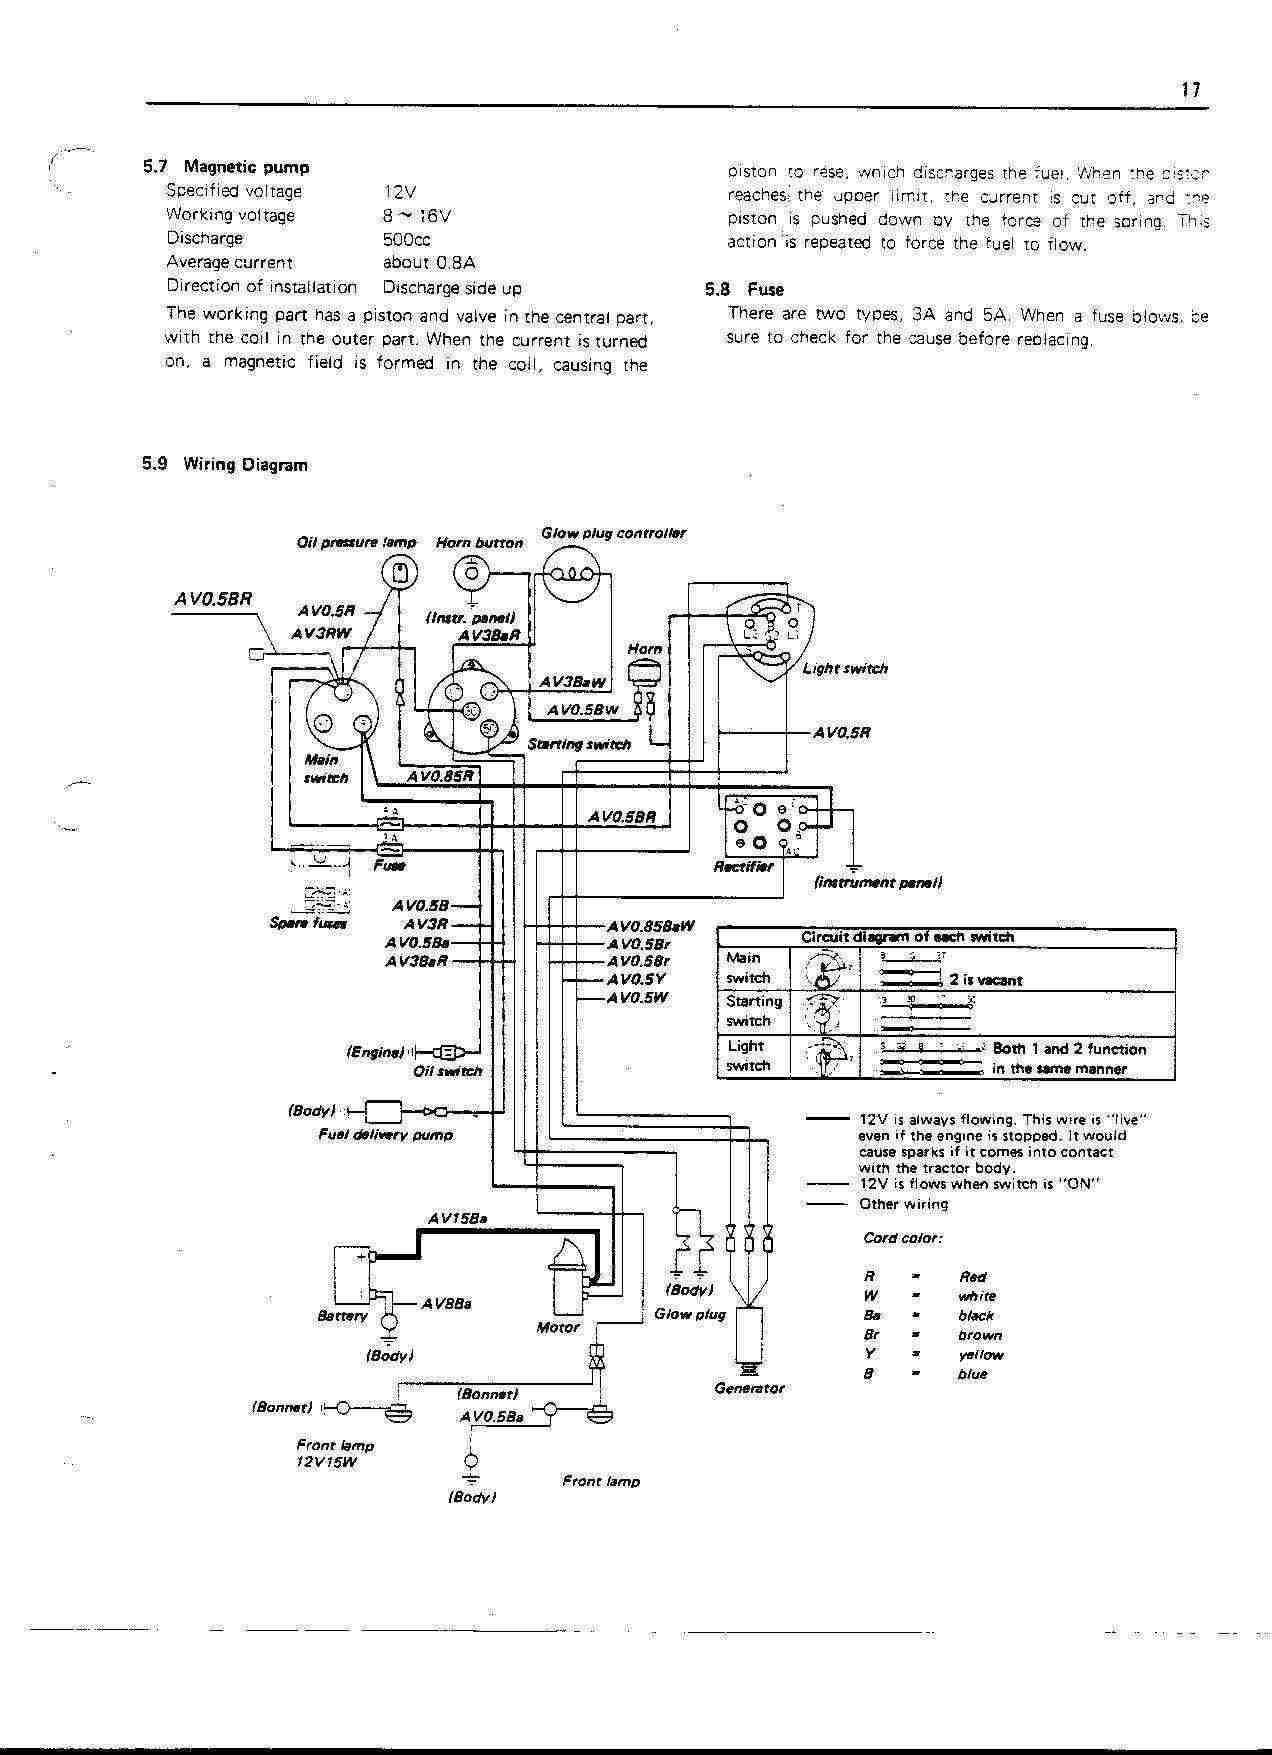 kubota b7100 wiring schematic kubota printable wiring b7300 kubota b7100 wiring diagram wire diagram 97 honda pport source